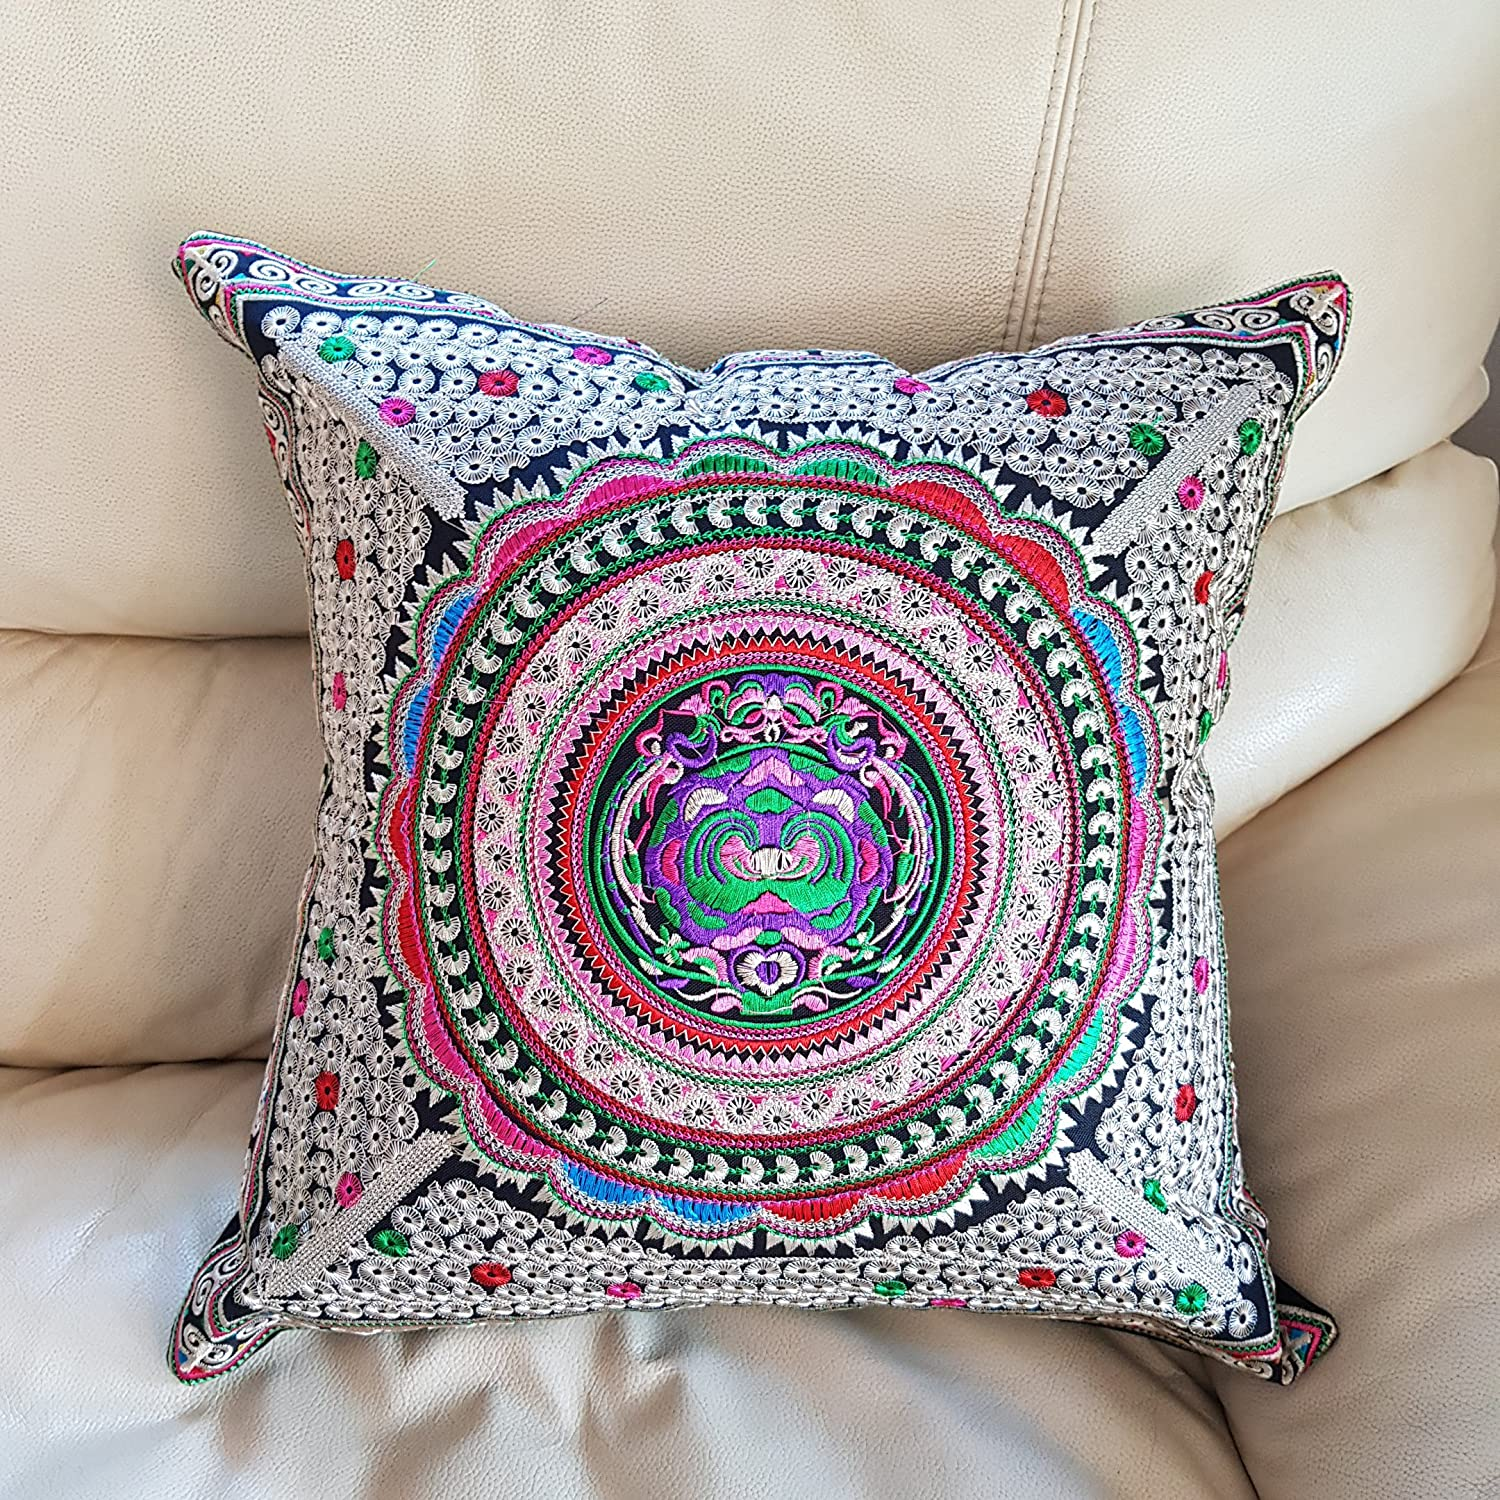 DOWDEGDEE Pillow Cases Decorative Pillow Cover Hmong Emproider Handmade Cotton Cushion case Silver Pink Flora 16 x 16 inches